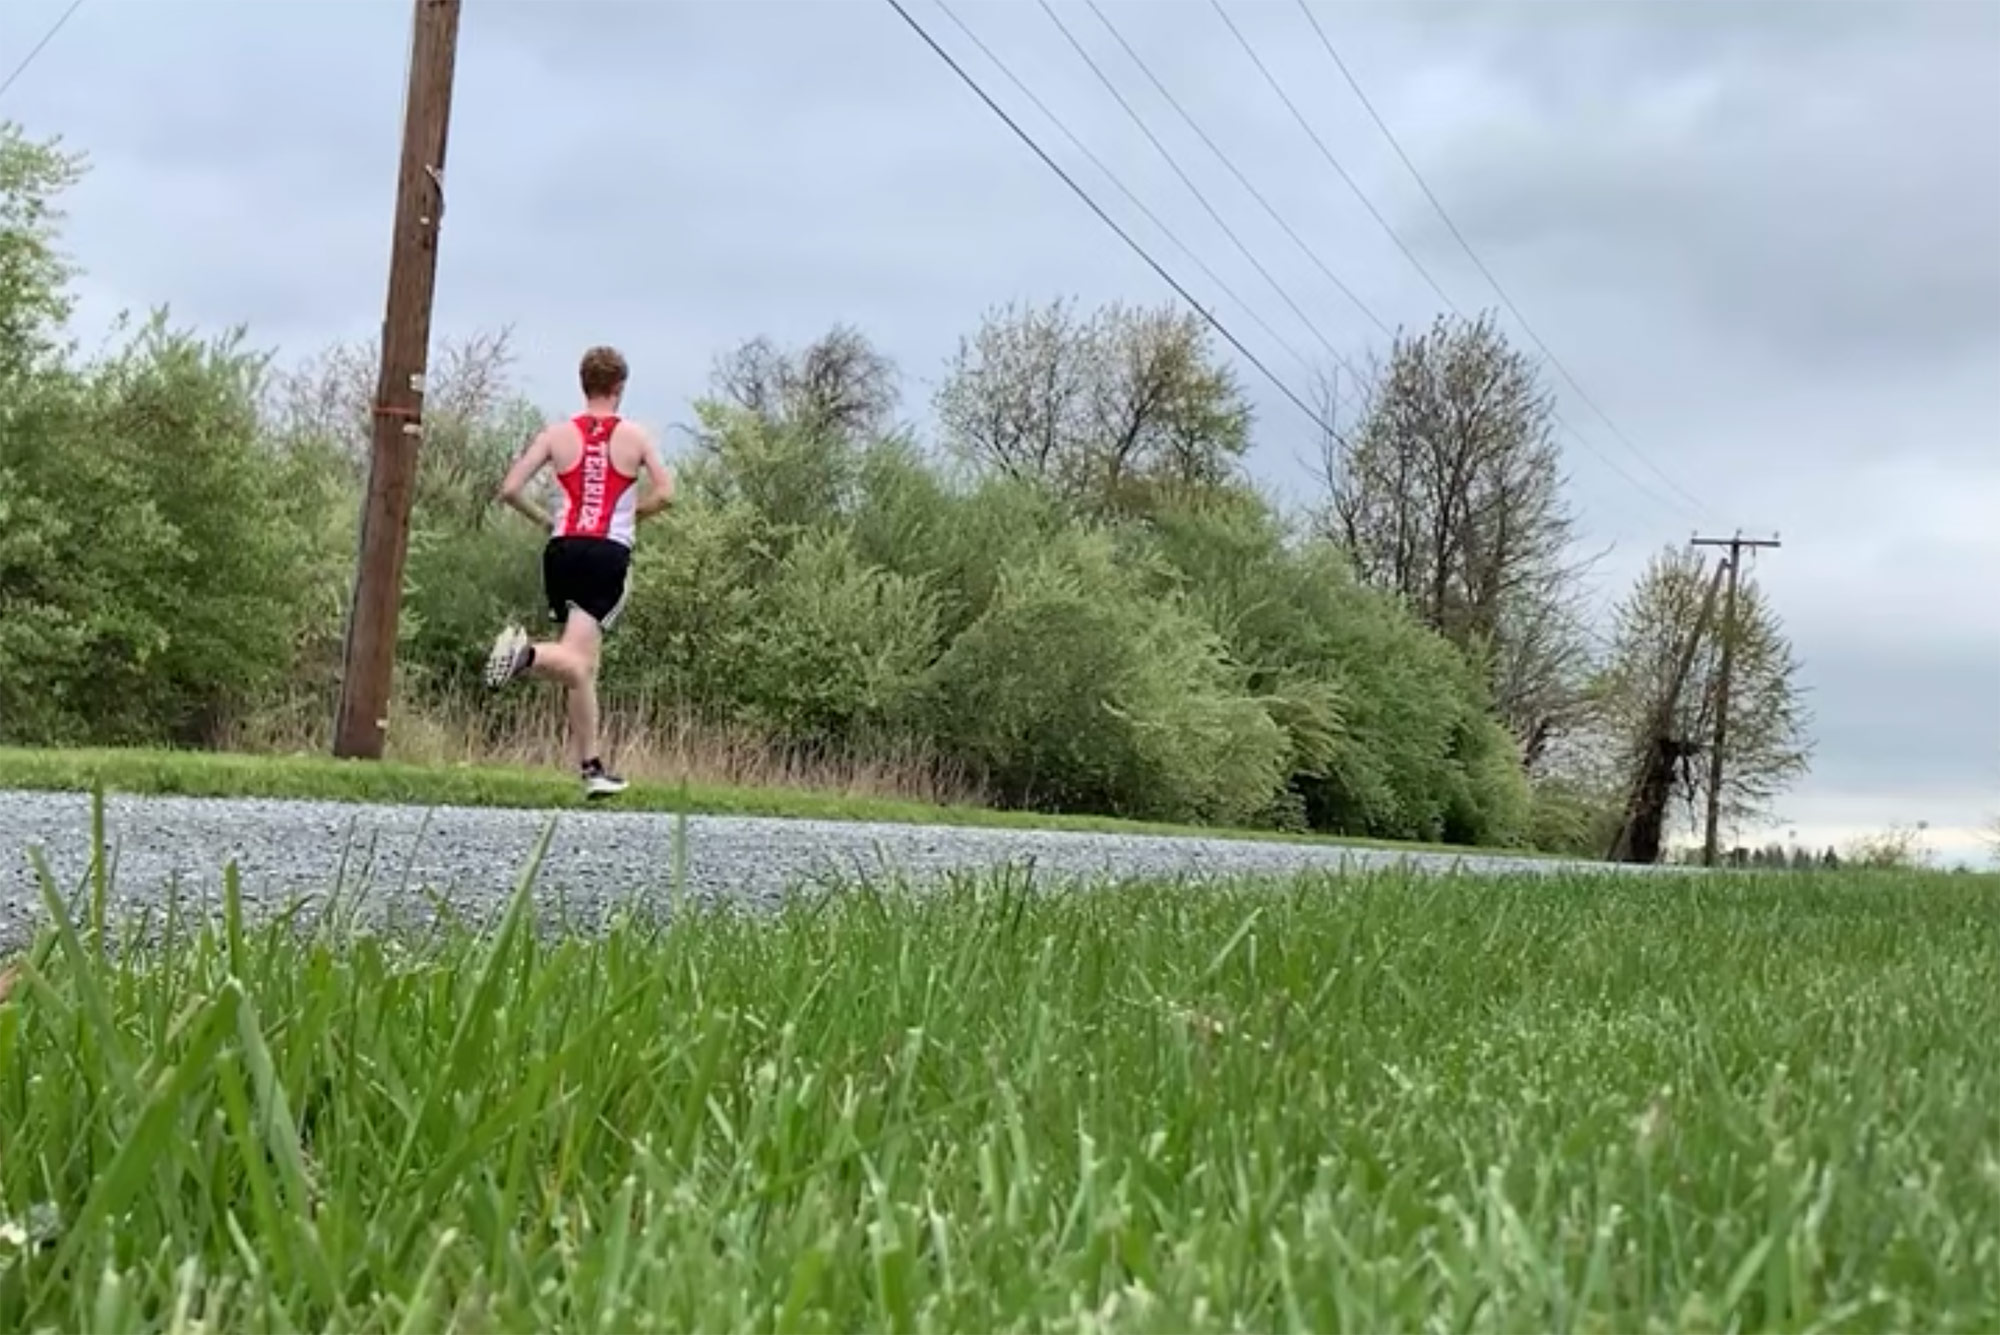 Photo of long-distance runner, Rylan Pettit (ENG'23), running down a street. Grass is seen in the foreground, Pettit wears his BU jersey. Pettit made a video discussing his improvised training regimen when the pandemic sent him home to Virginia for remote learning.